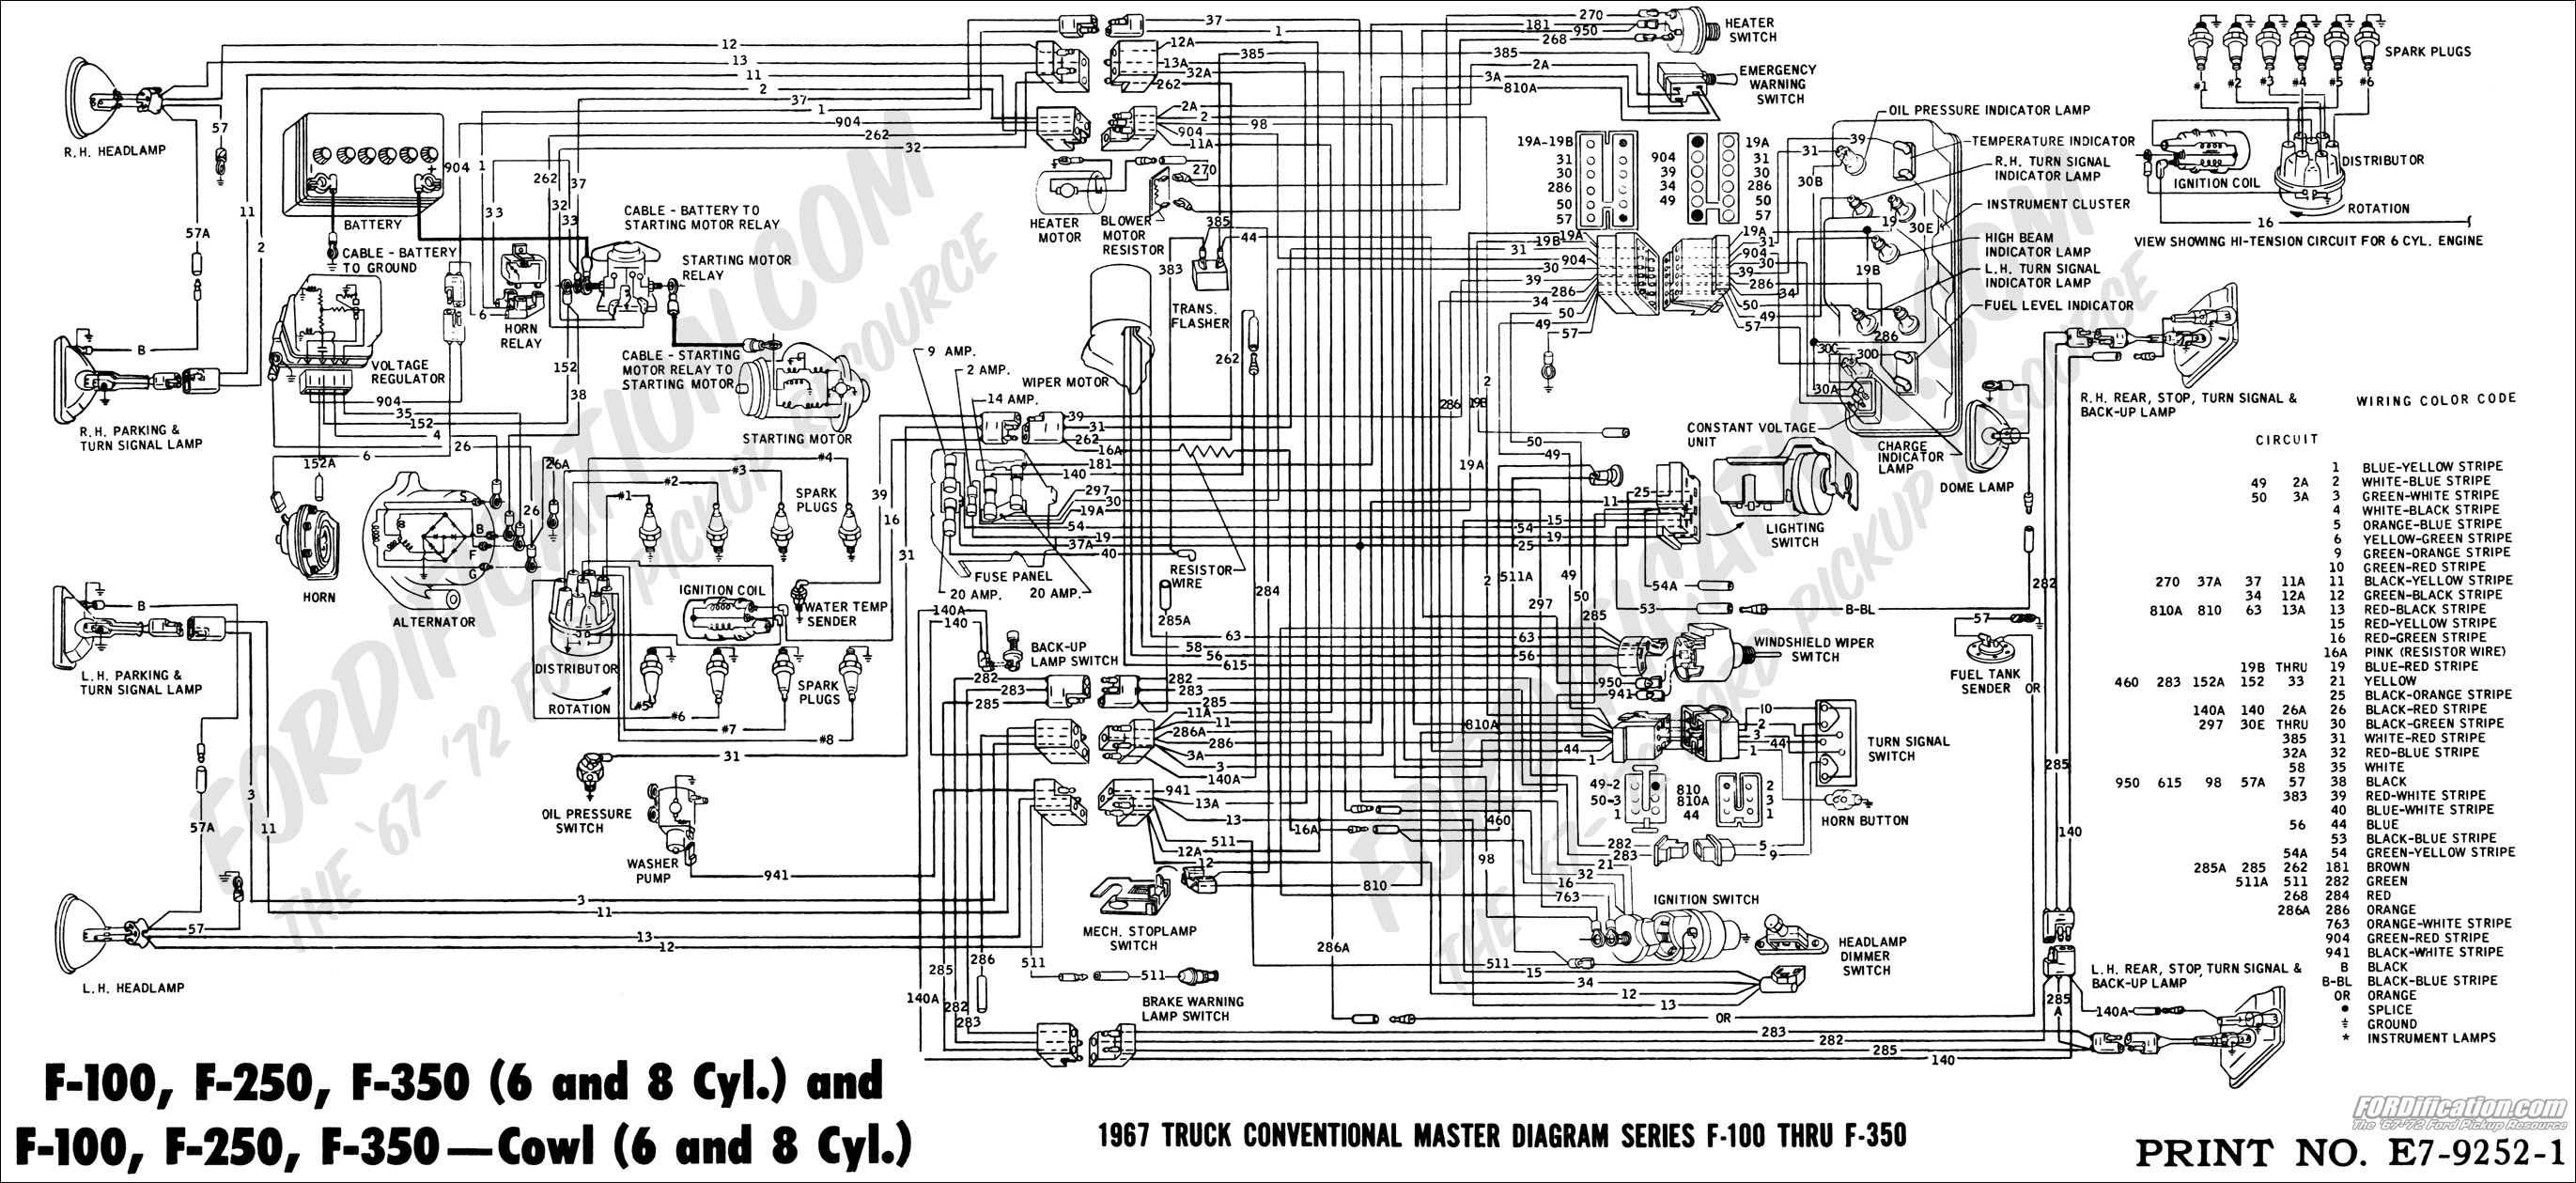 Ford Ranger Engine Diagram On V6 Engine Cylinder Head Diagram